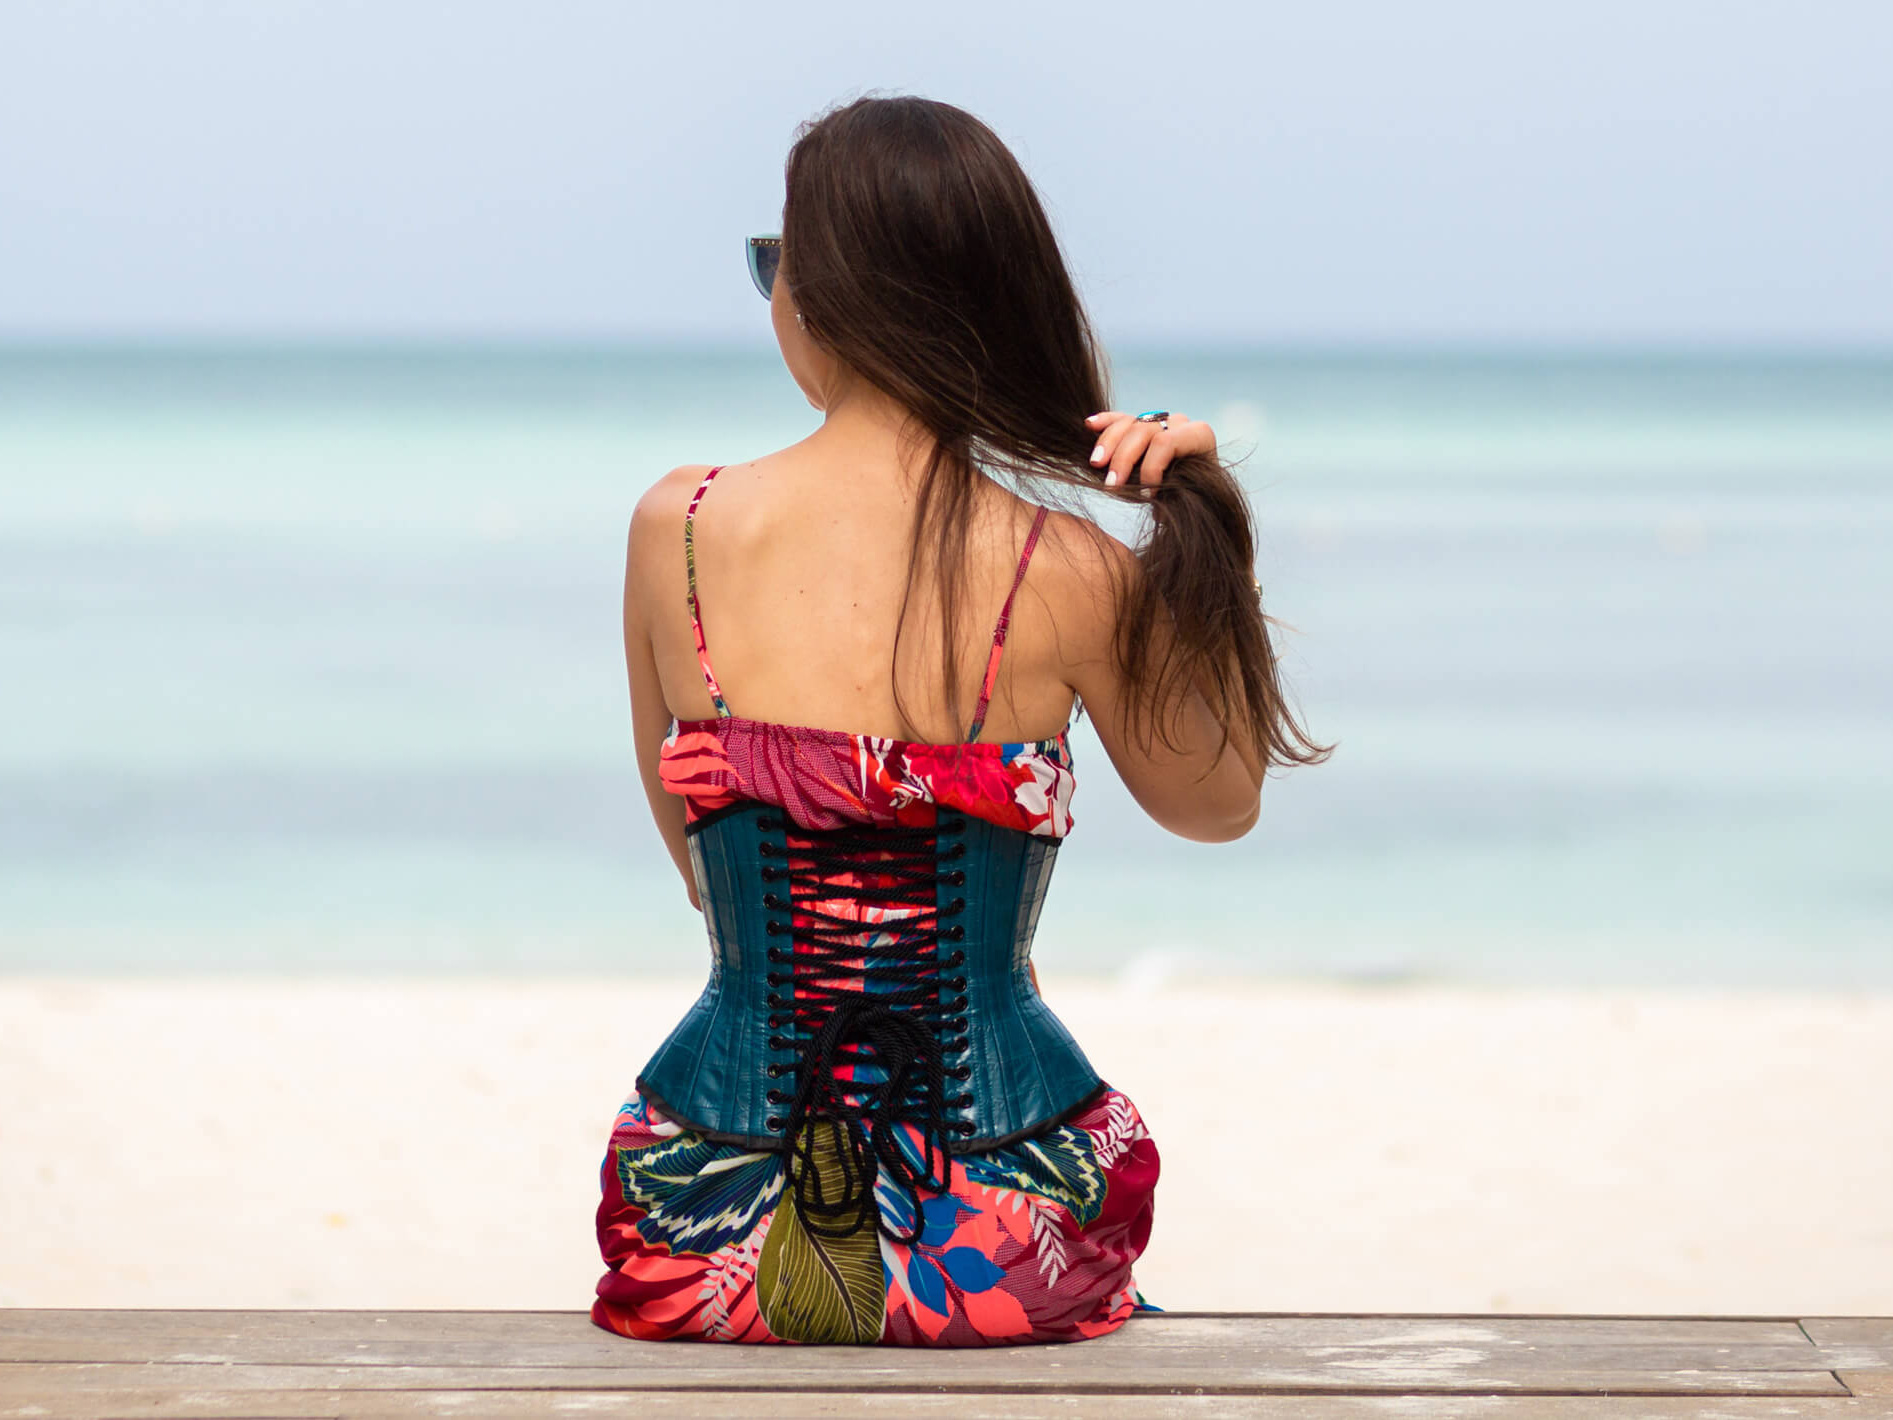 Back view of Stella in Teal Corset and Red Tropical Dress Sitting on Wooden Walkway